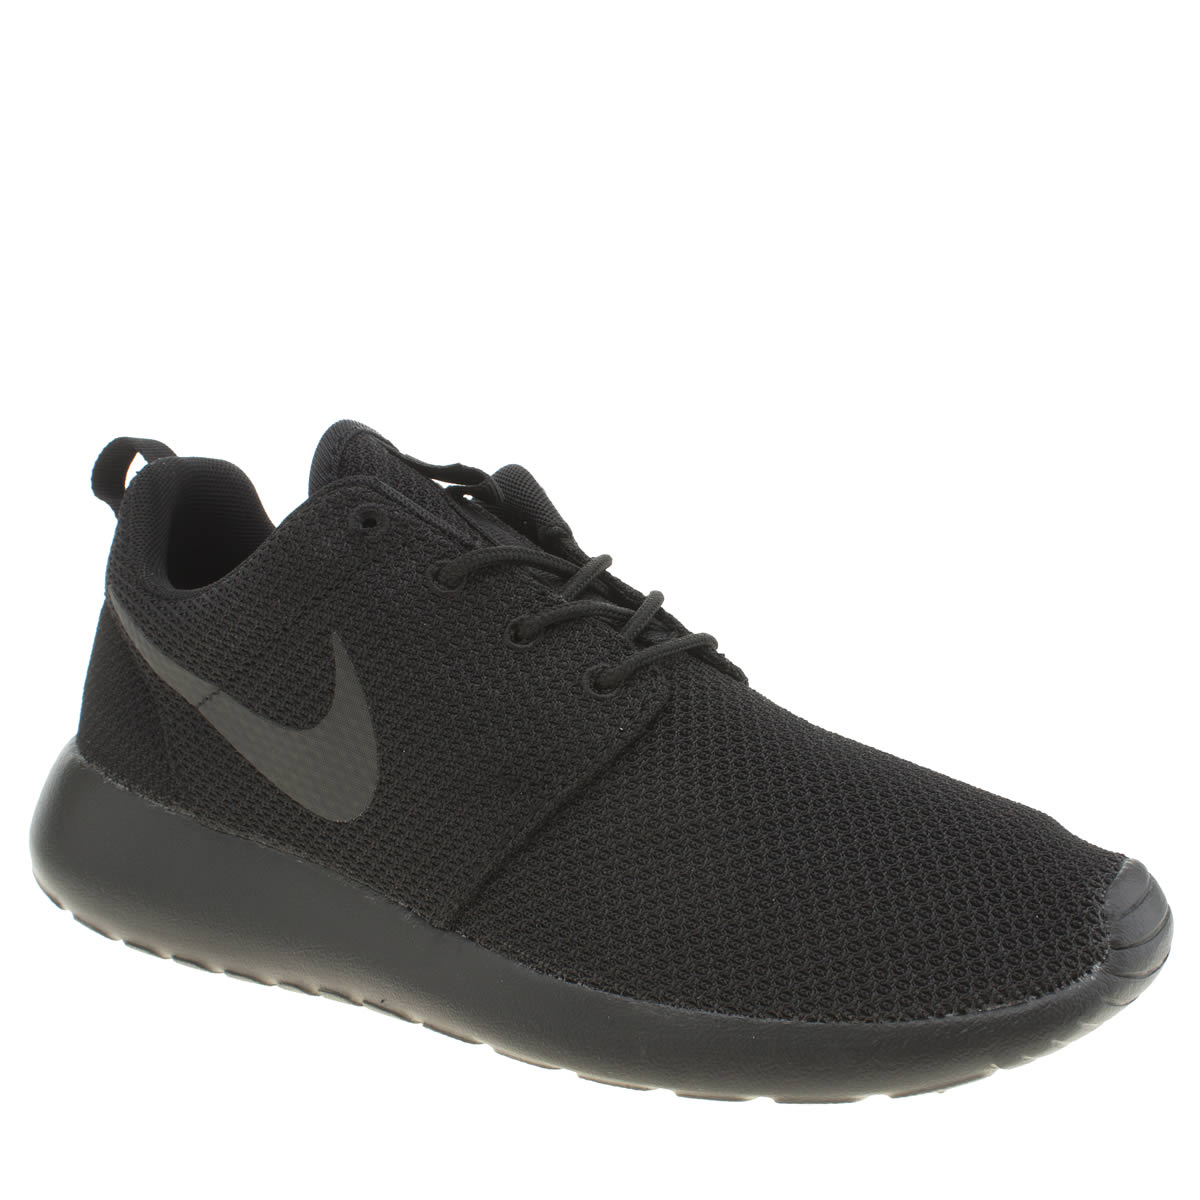 432053e0a0999 Women Mens nike roshe one breeze casual shoes in calypso 77% Off ...